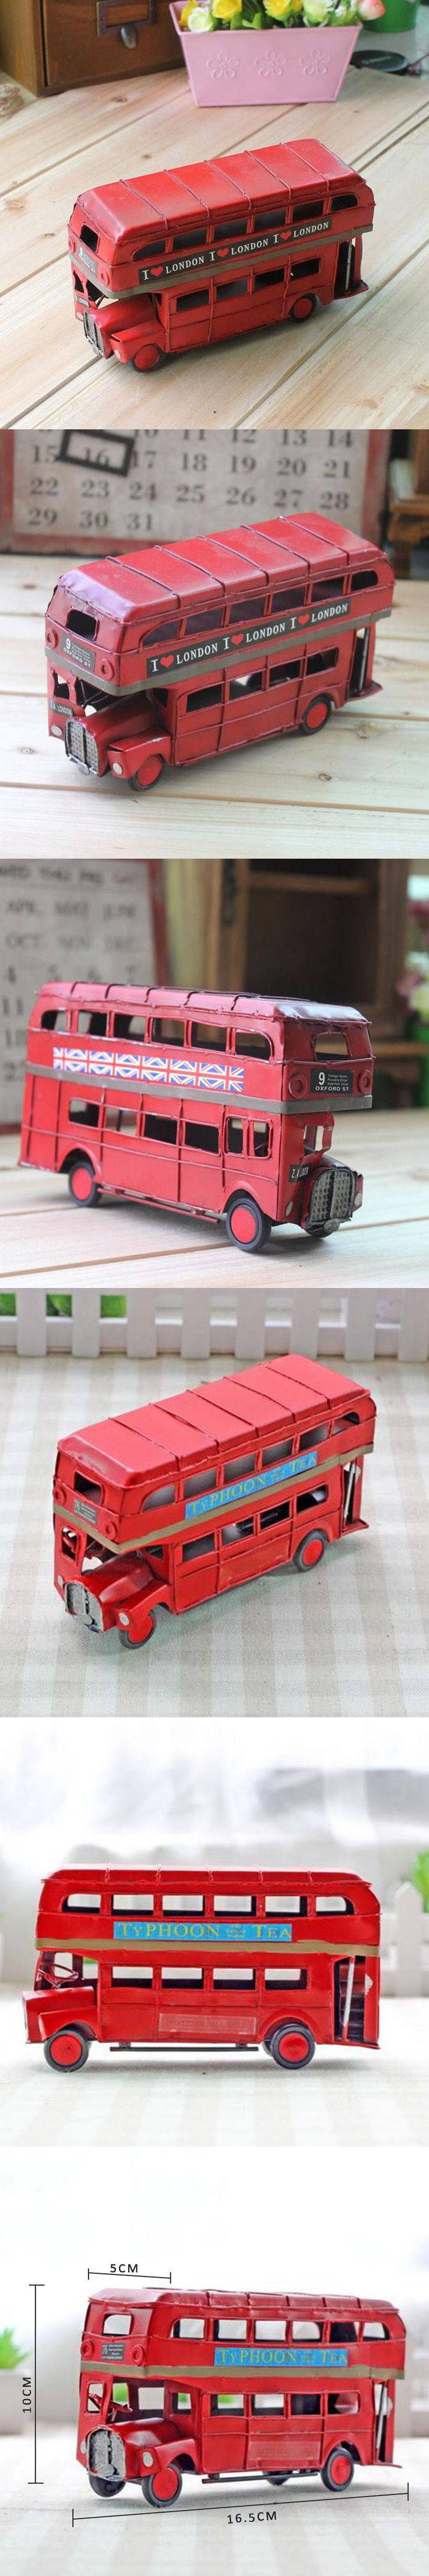 Handmade iron sheet red london double decker bus car models retro furnishing articles arts crafts home decorations